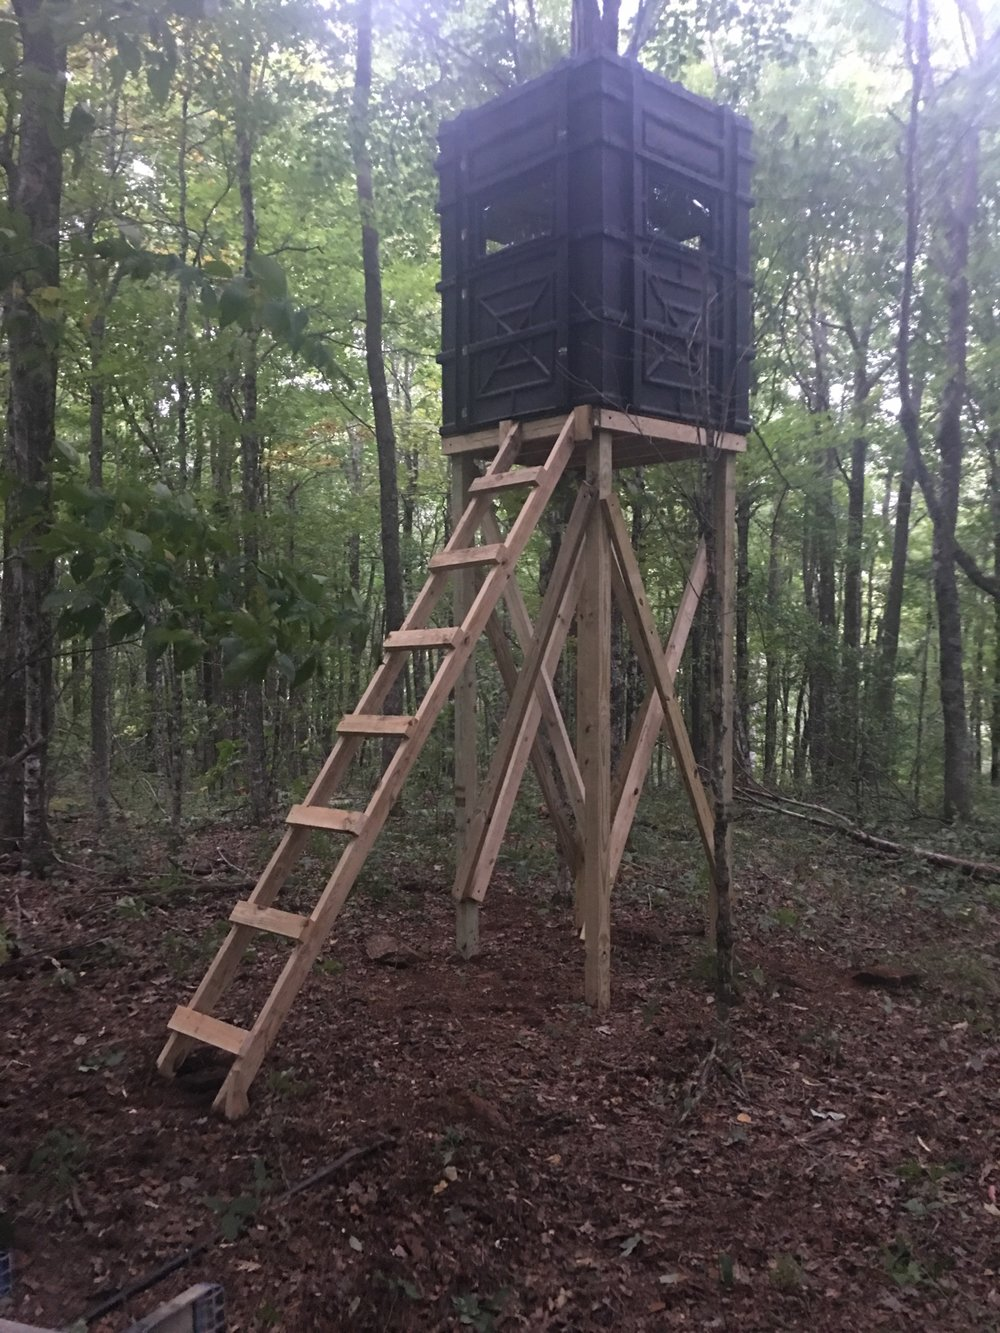 blind build blinds watch platform deer stand treehouse a tree how observation youtube to nature